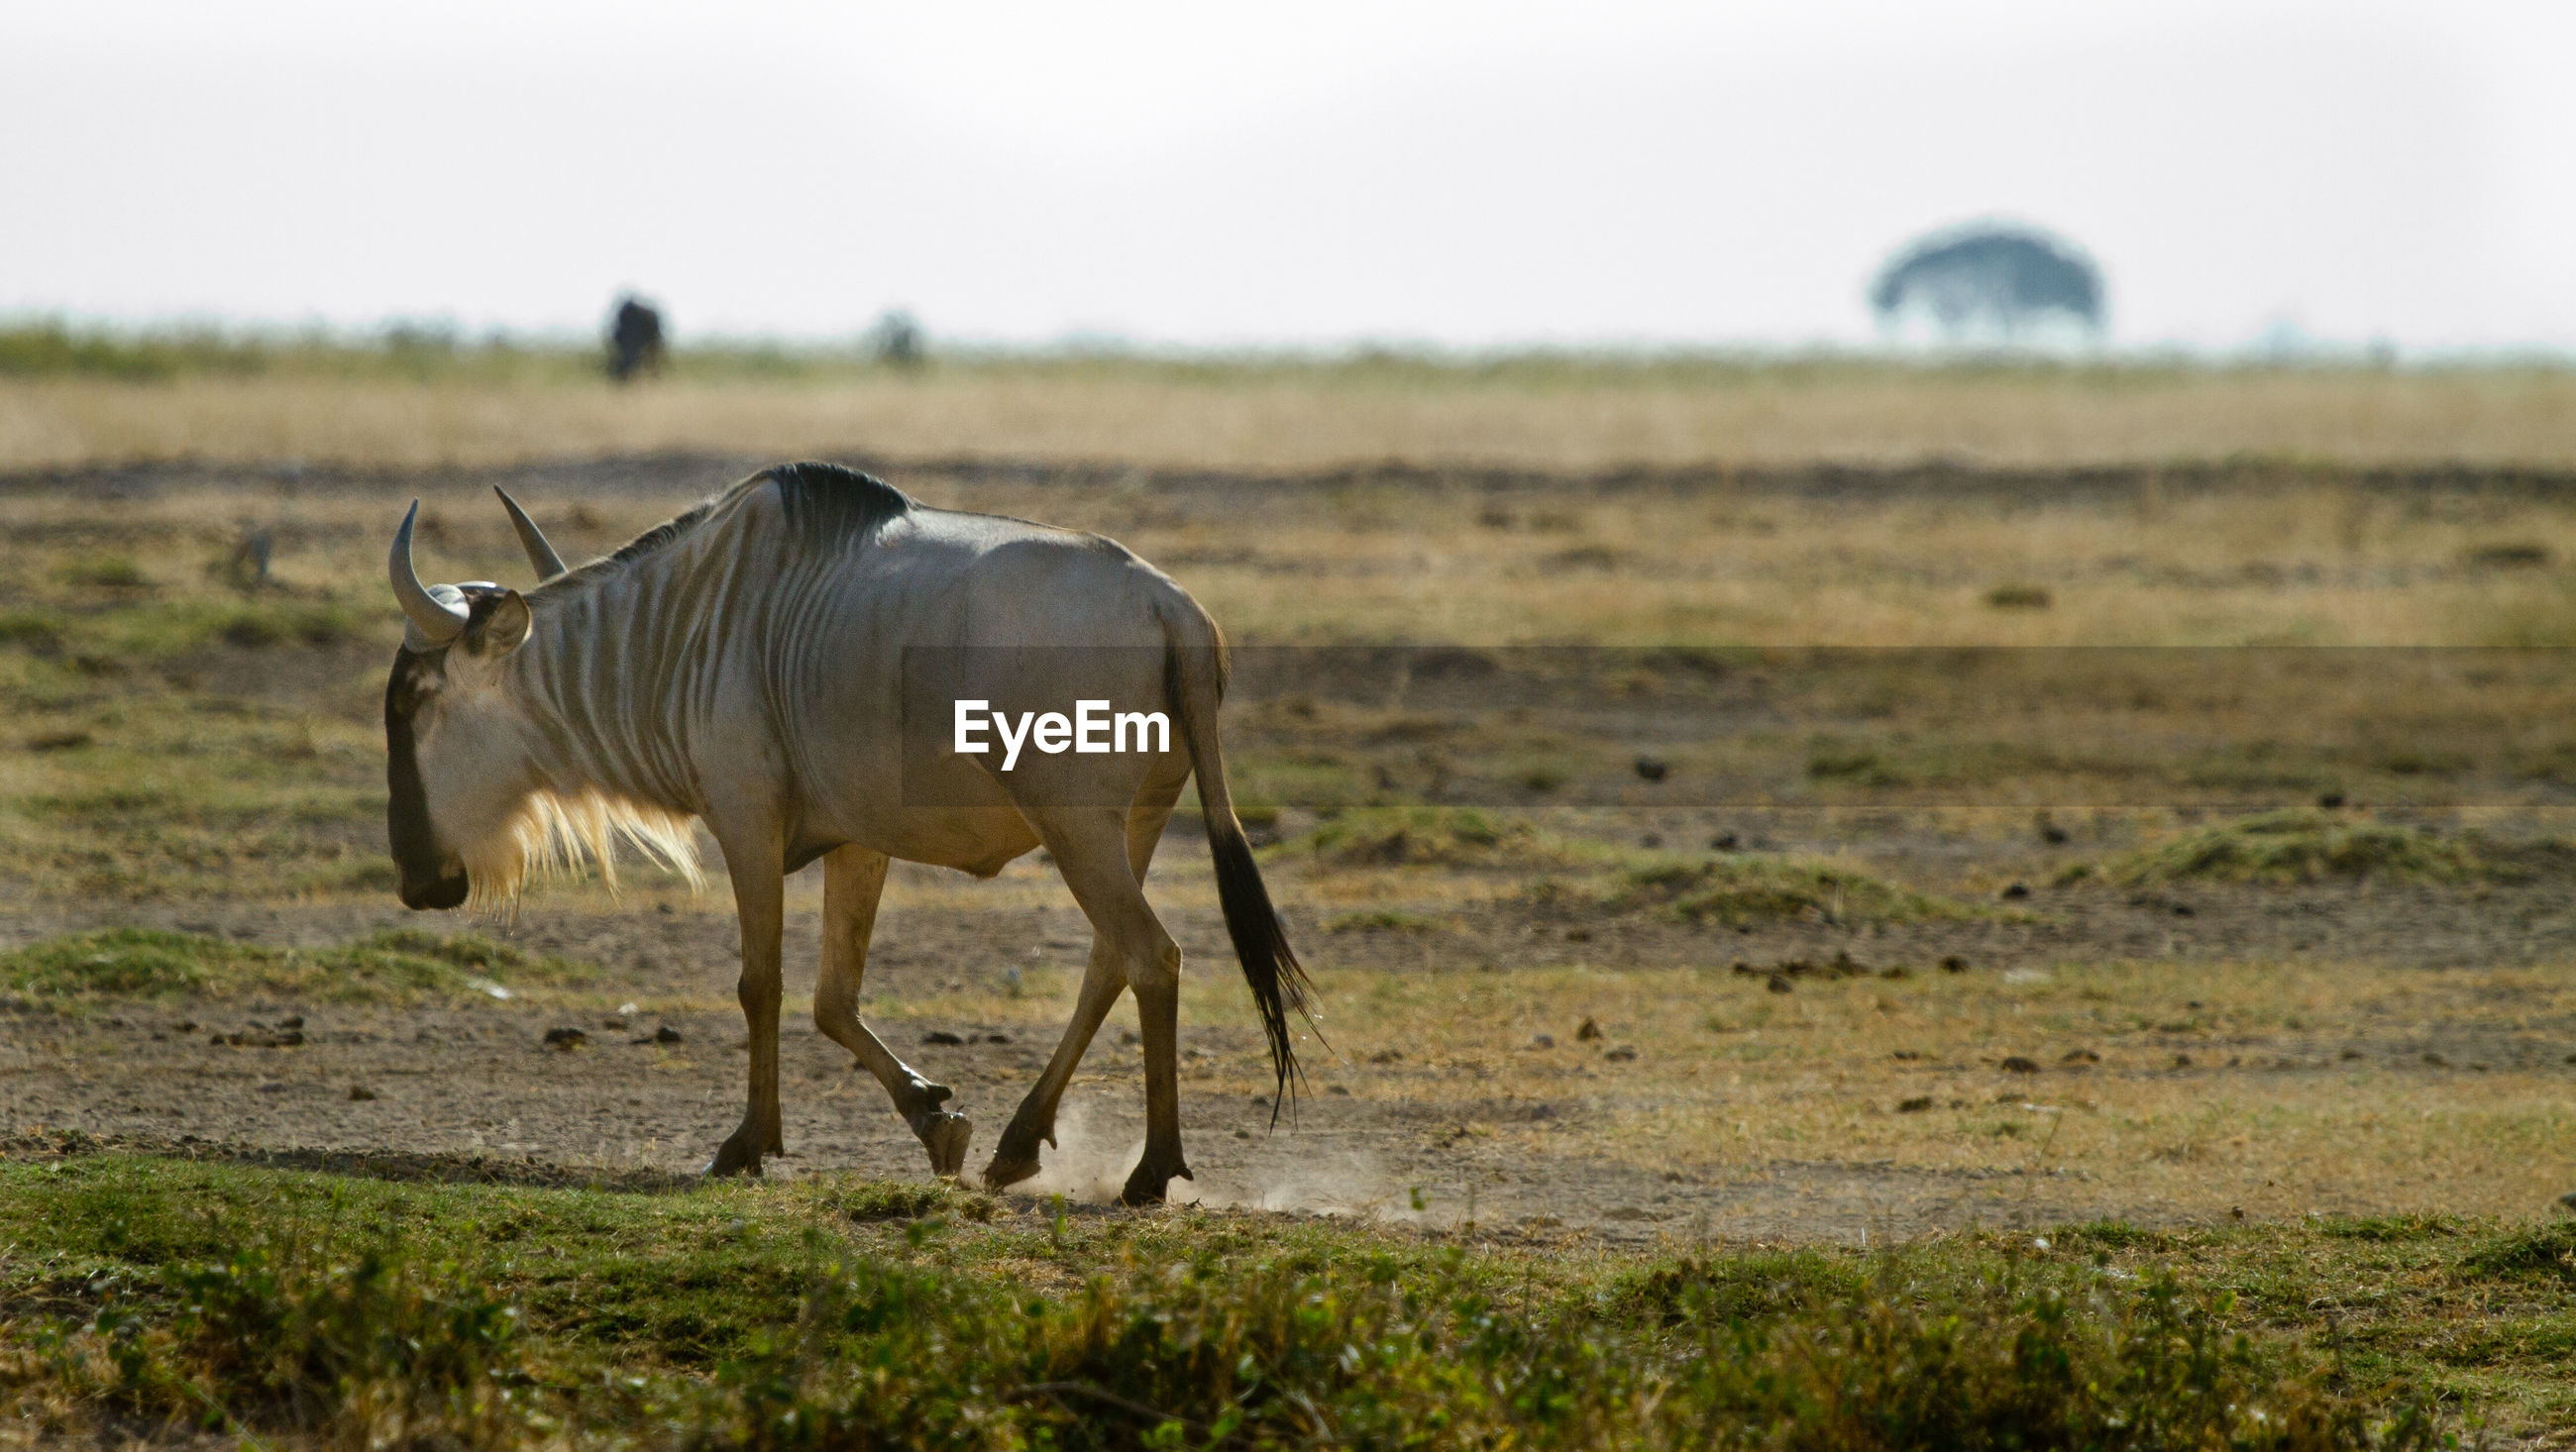 A wildebeest walking along a dusty field